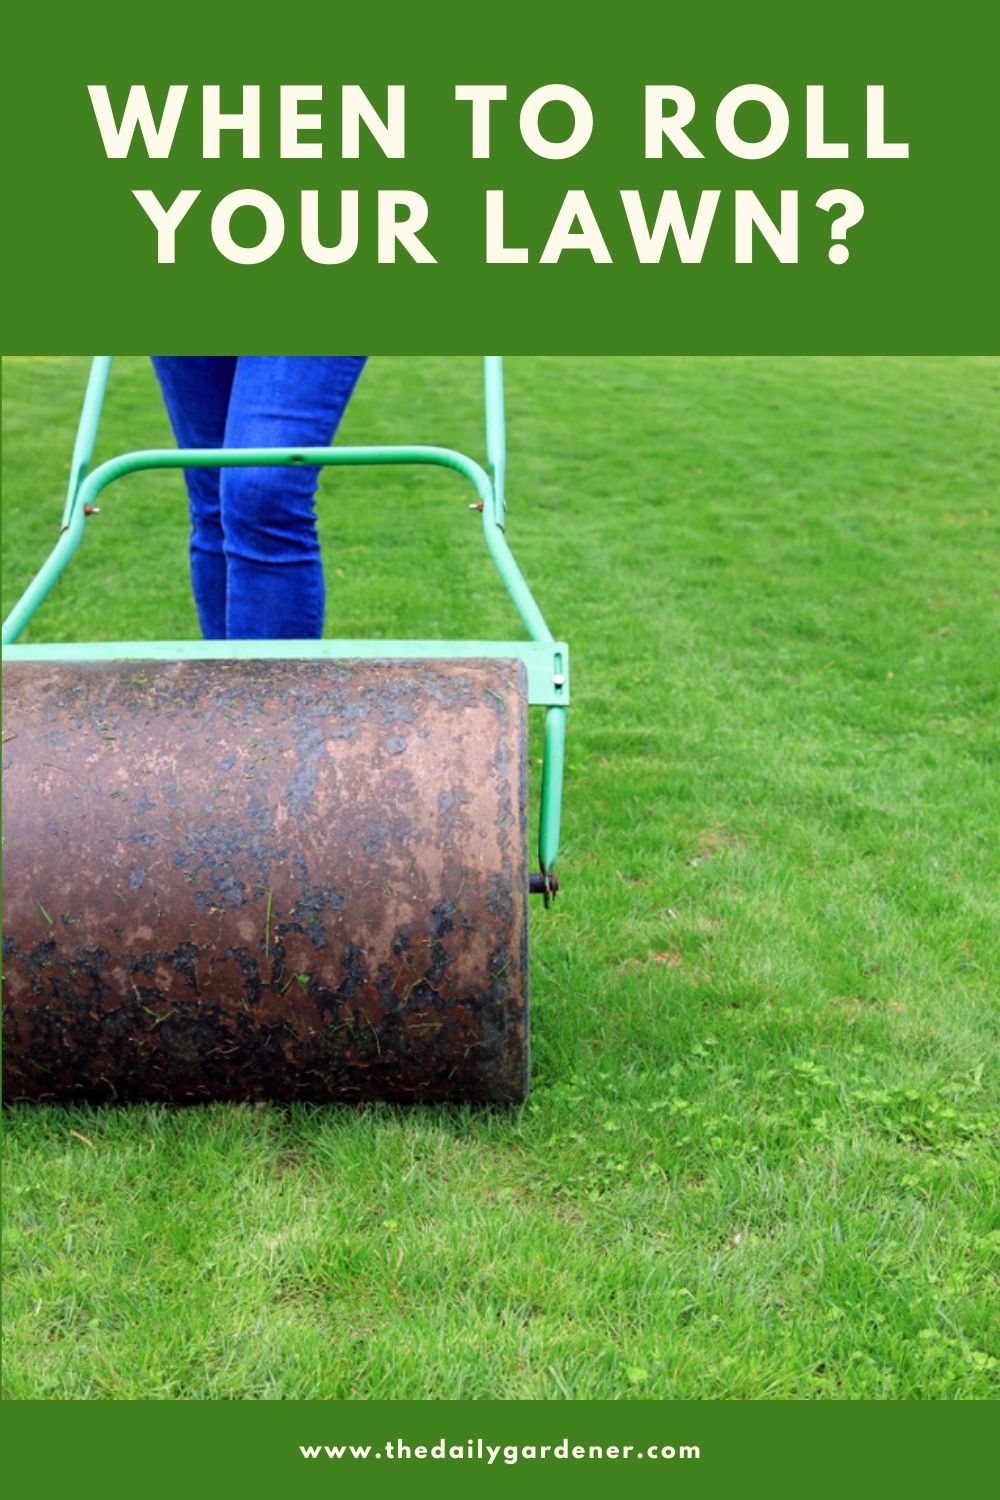 When to Roll Your Lawn 2